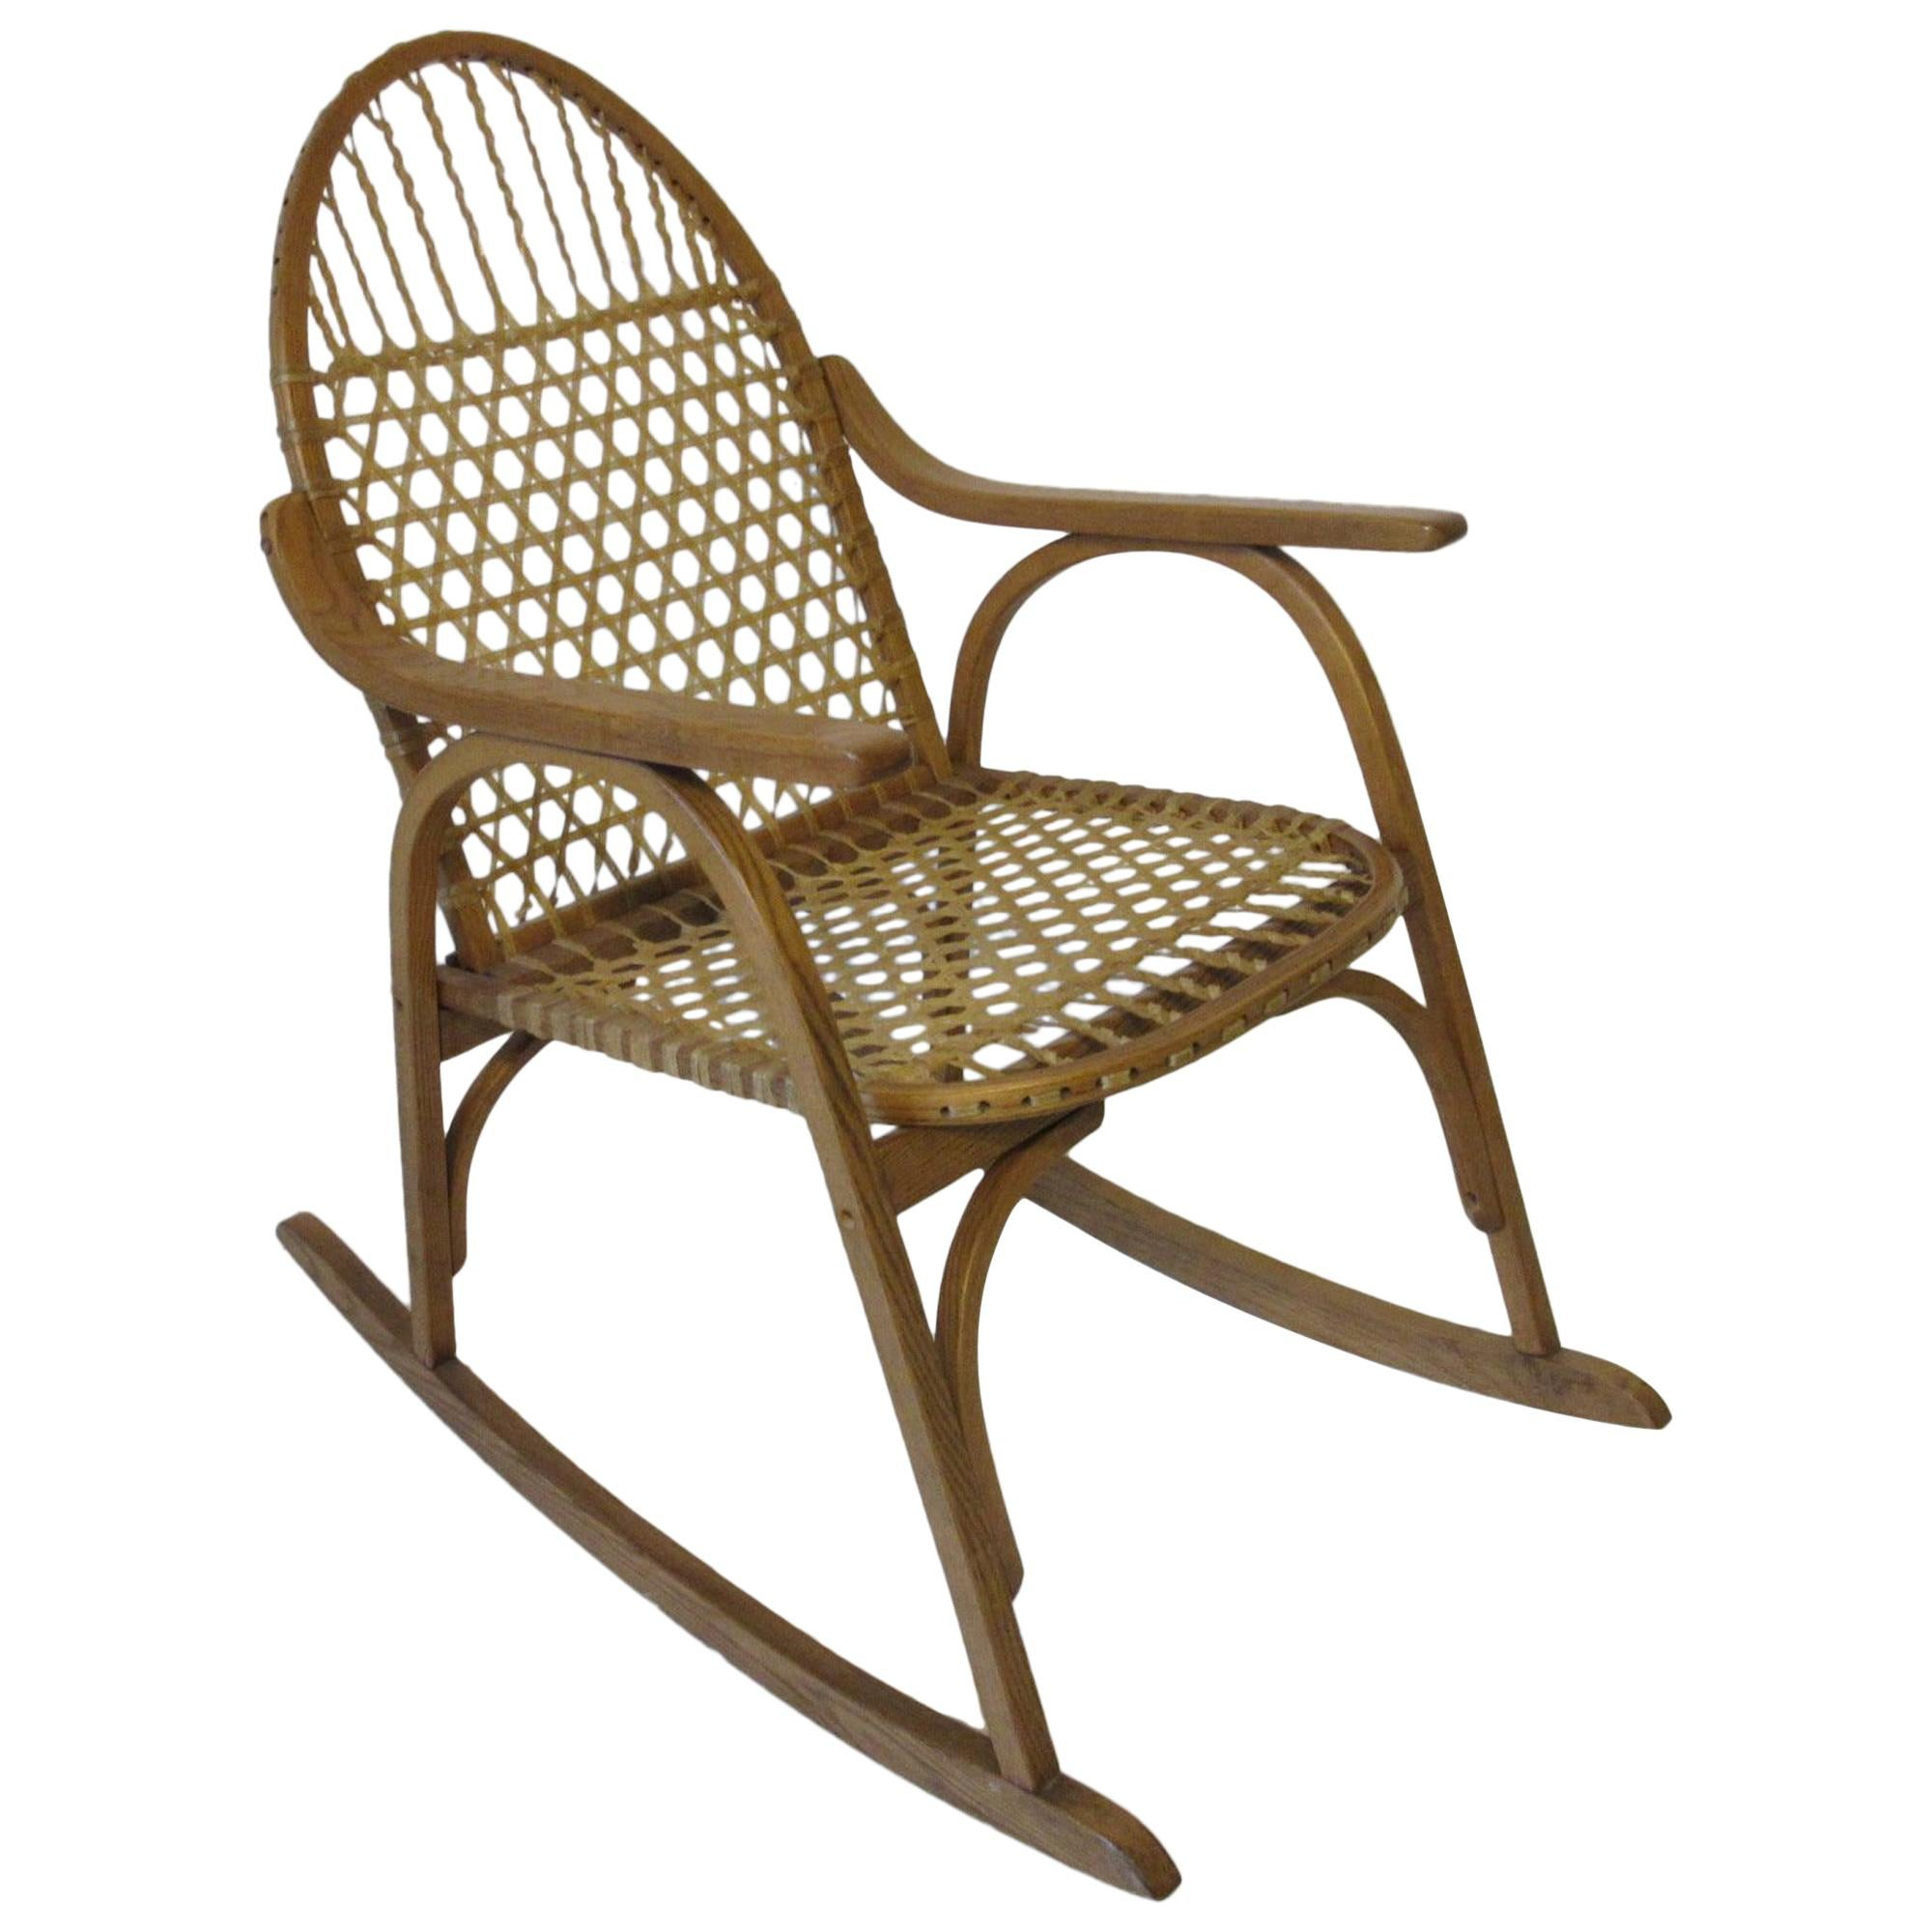 Snow Shoe Styled Rocking Chair by Vermont Tubbs